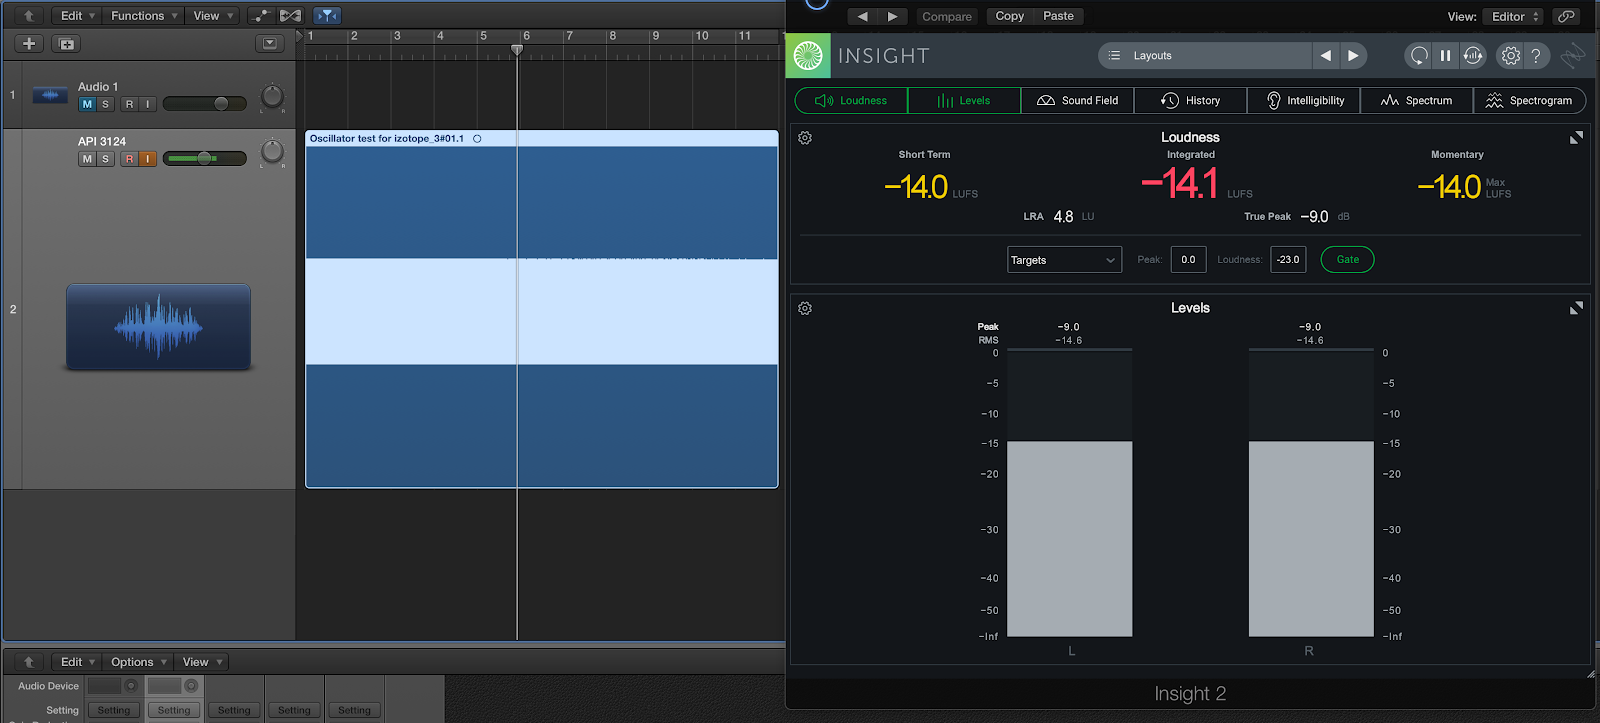 Gain Staging: What It Is and How to Do It